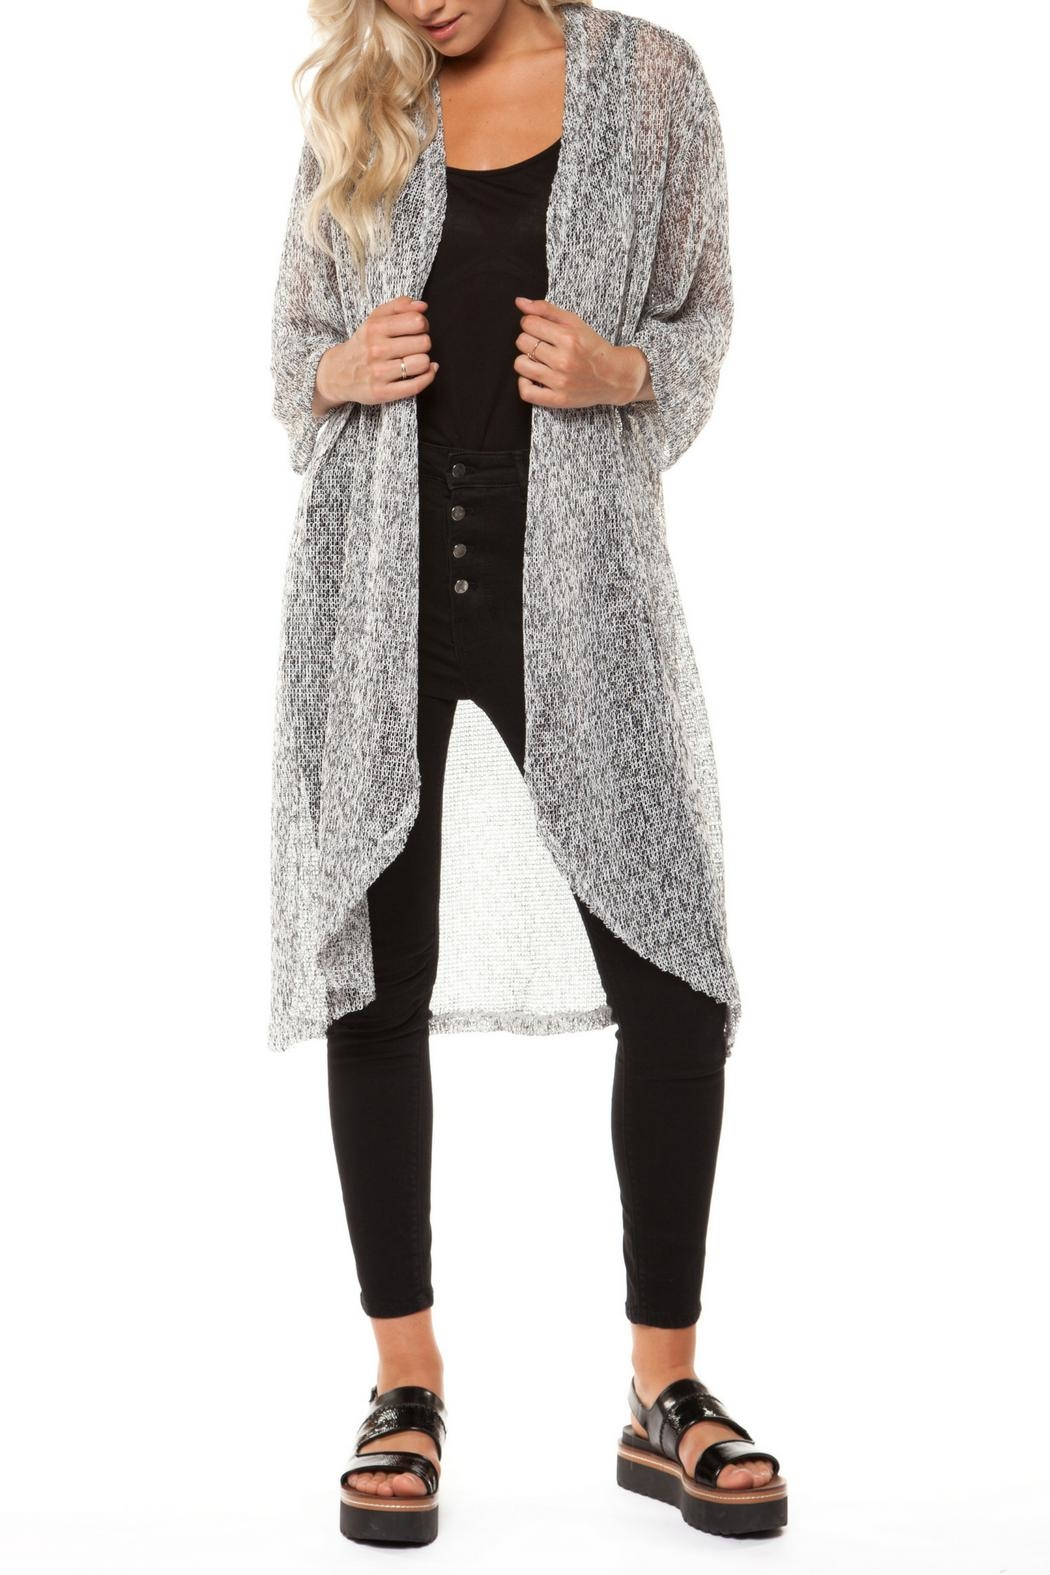 Dex Salt-n-Pepper Duster Cardigan - Main Image